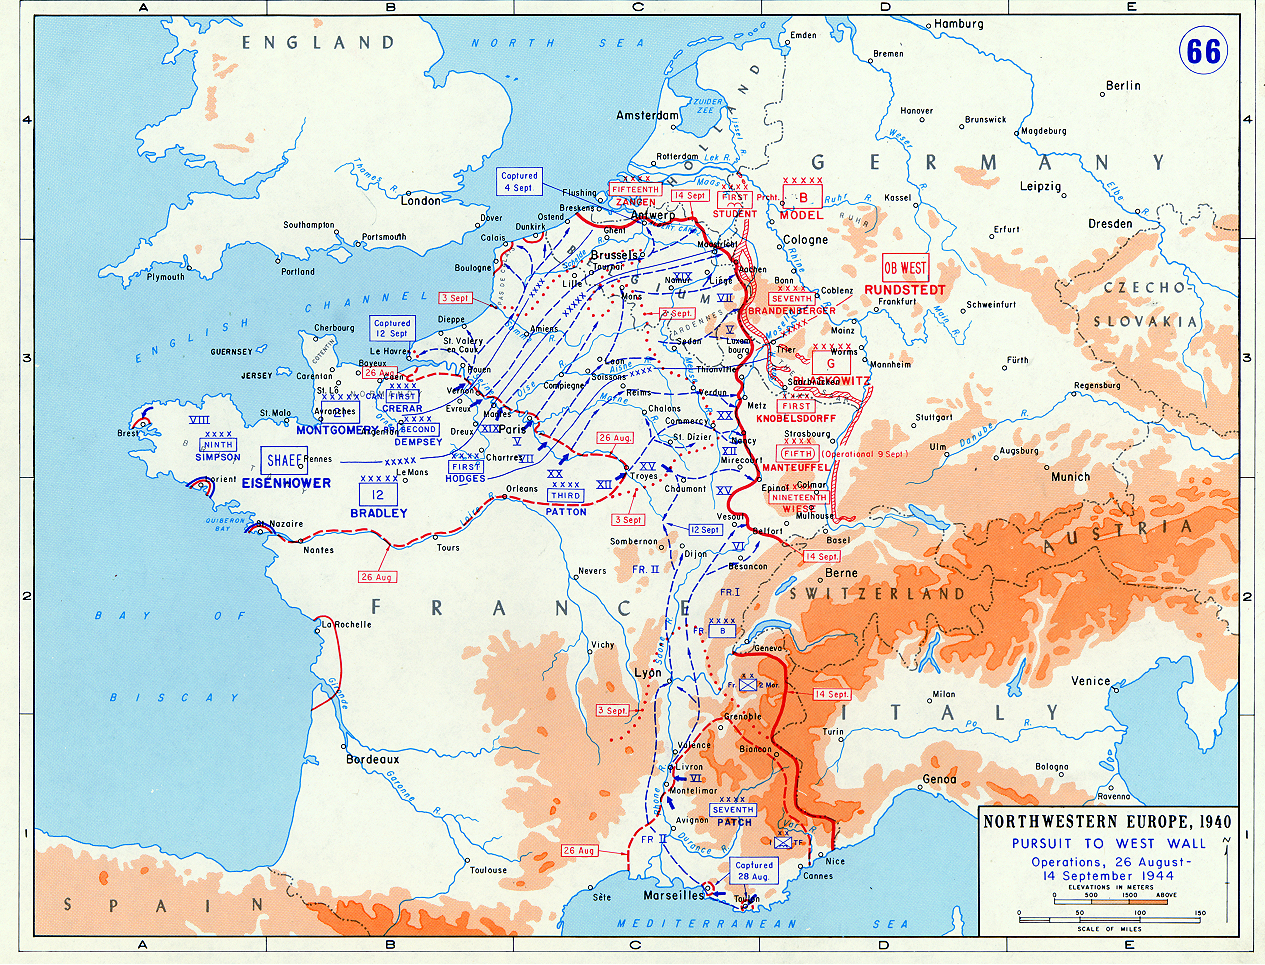 West Of France Map.Map Of Allied Pursuit To The West Wall August September 1944